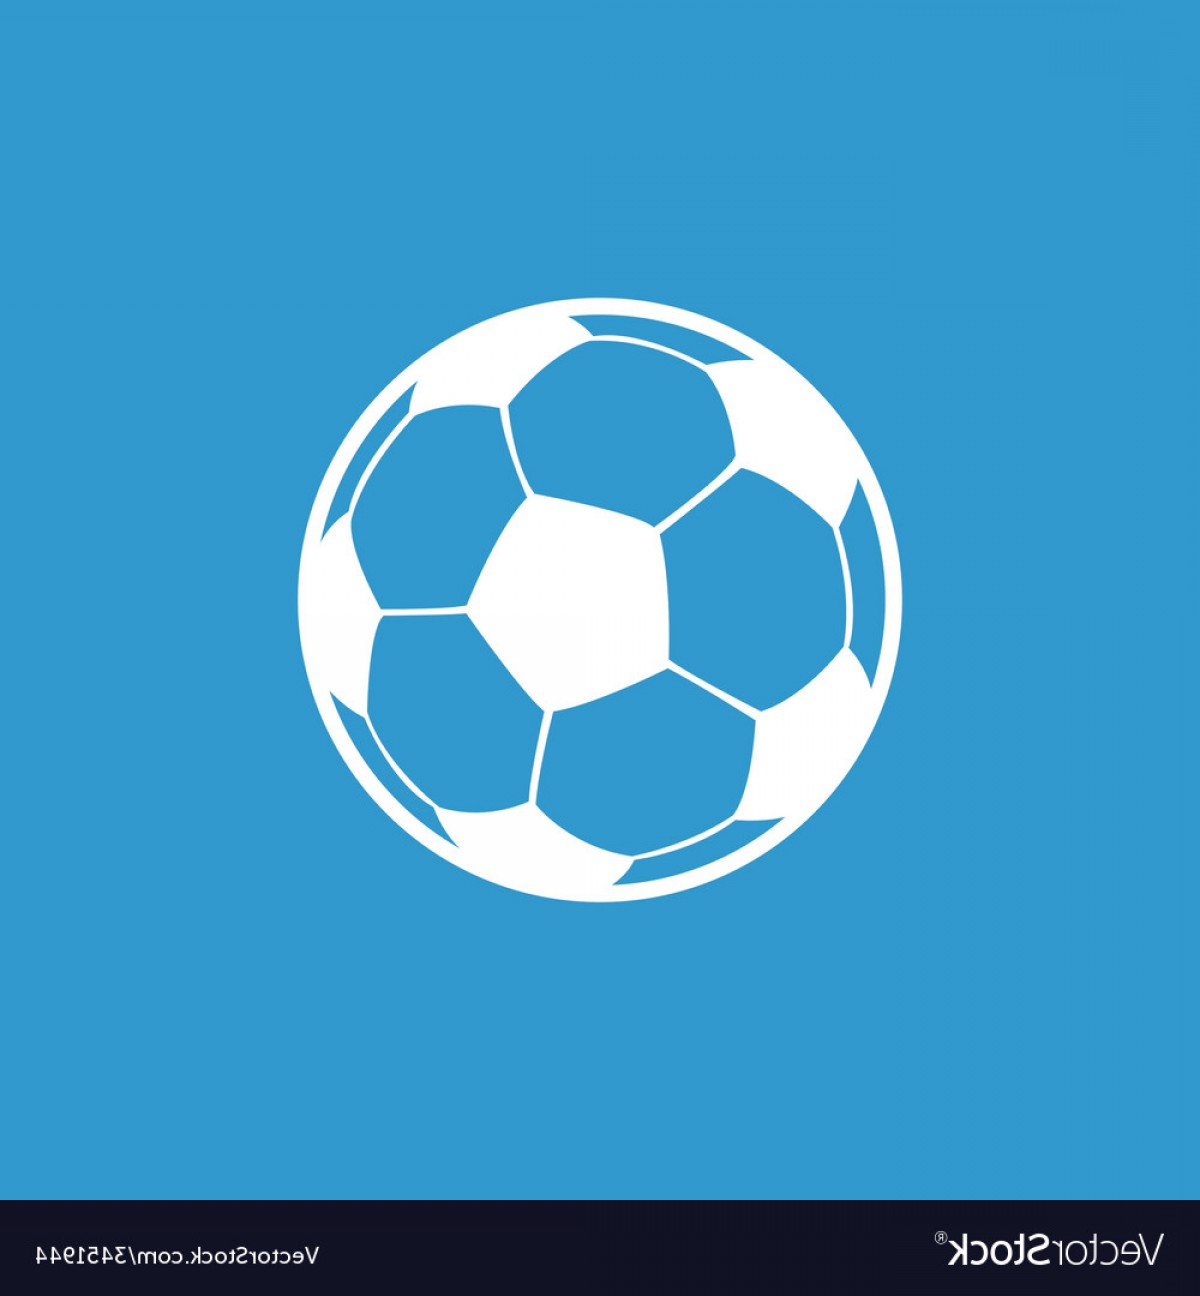 Soccer Blue Background Vector Graphics: Football Ball Icon White On The Blue Background Vector